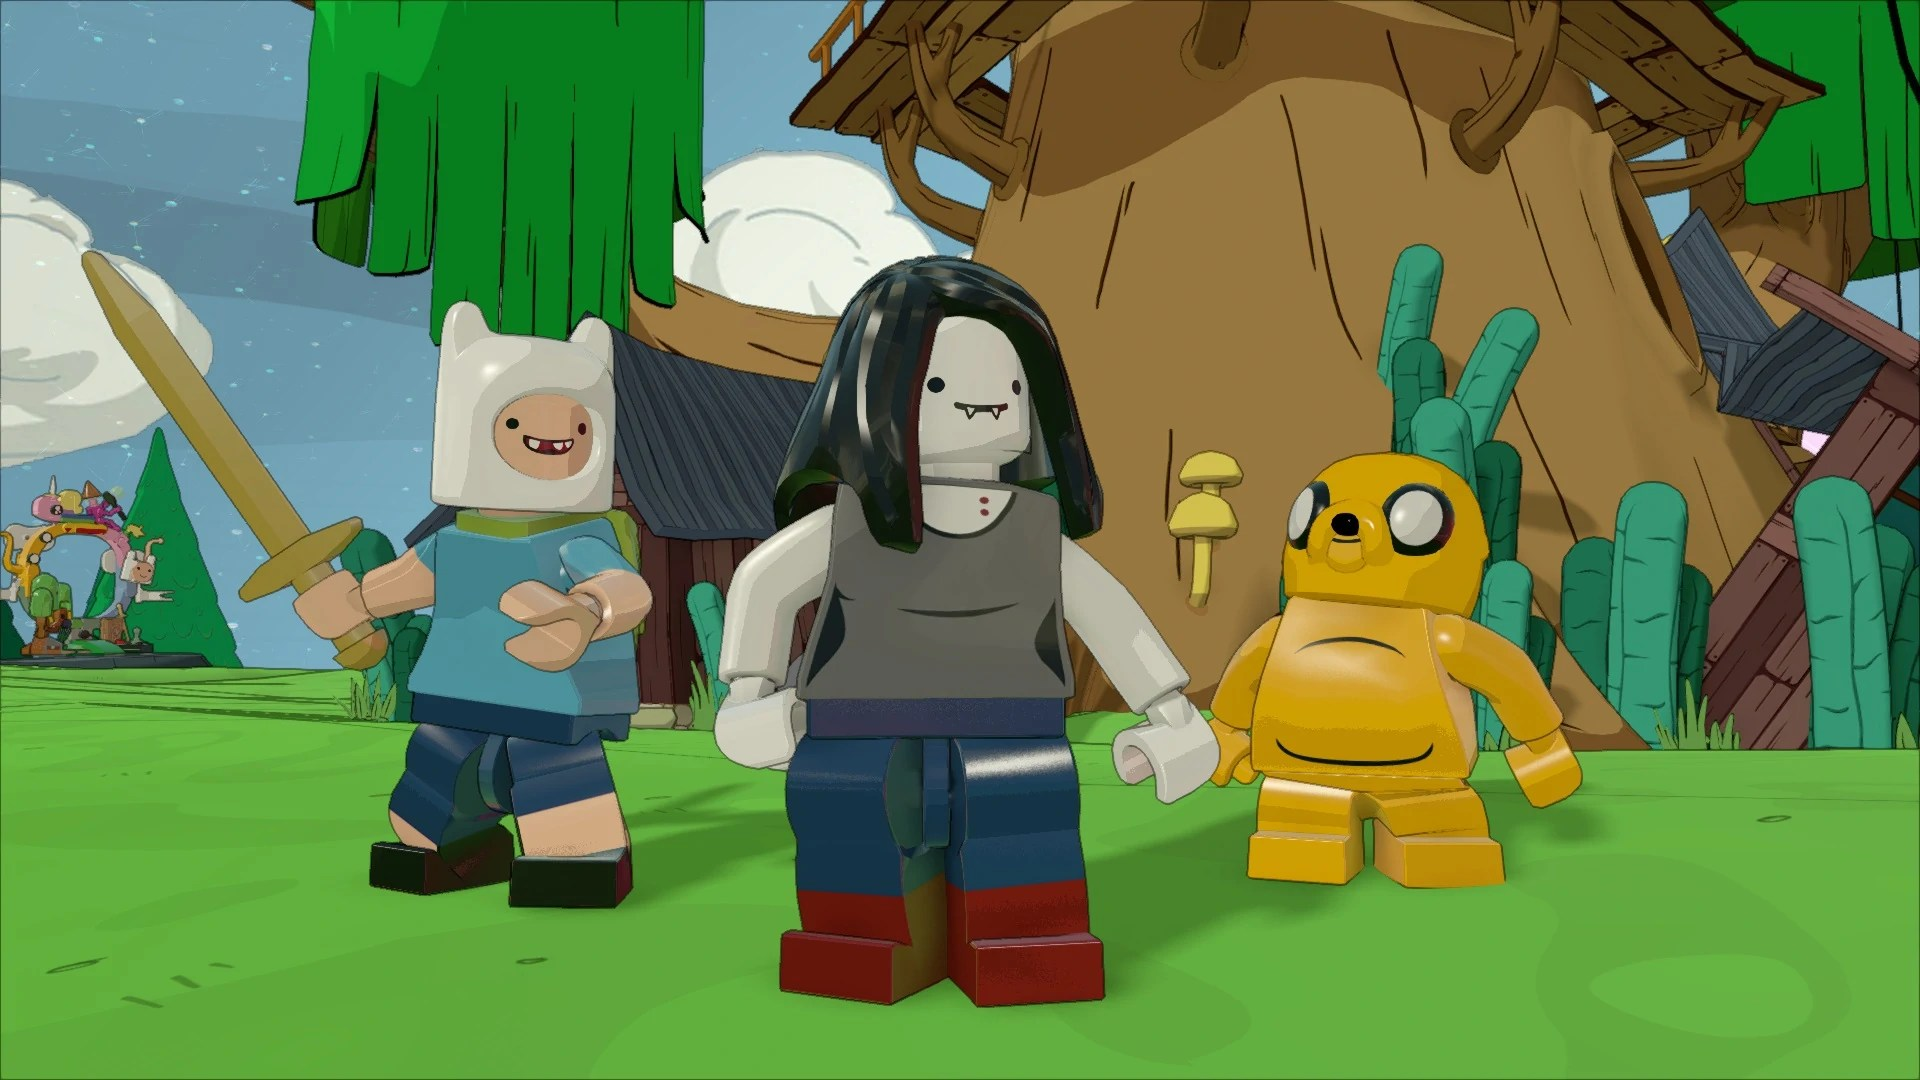 Image   Adventure Time Marceline Jake Finn 0 jpg   LEGO Dimensions     Adventure Time Marceline Jake Finn 0 jpg